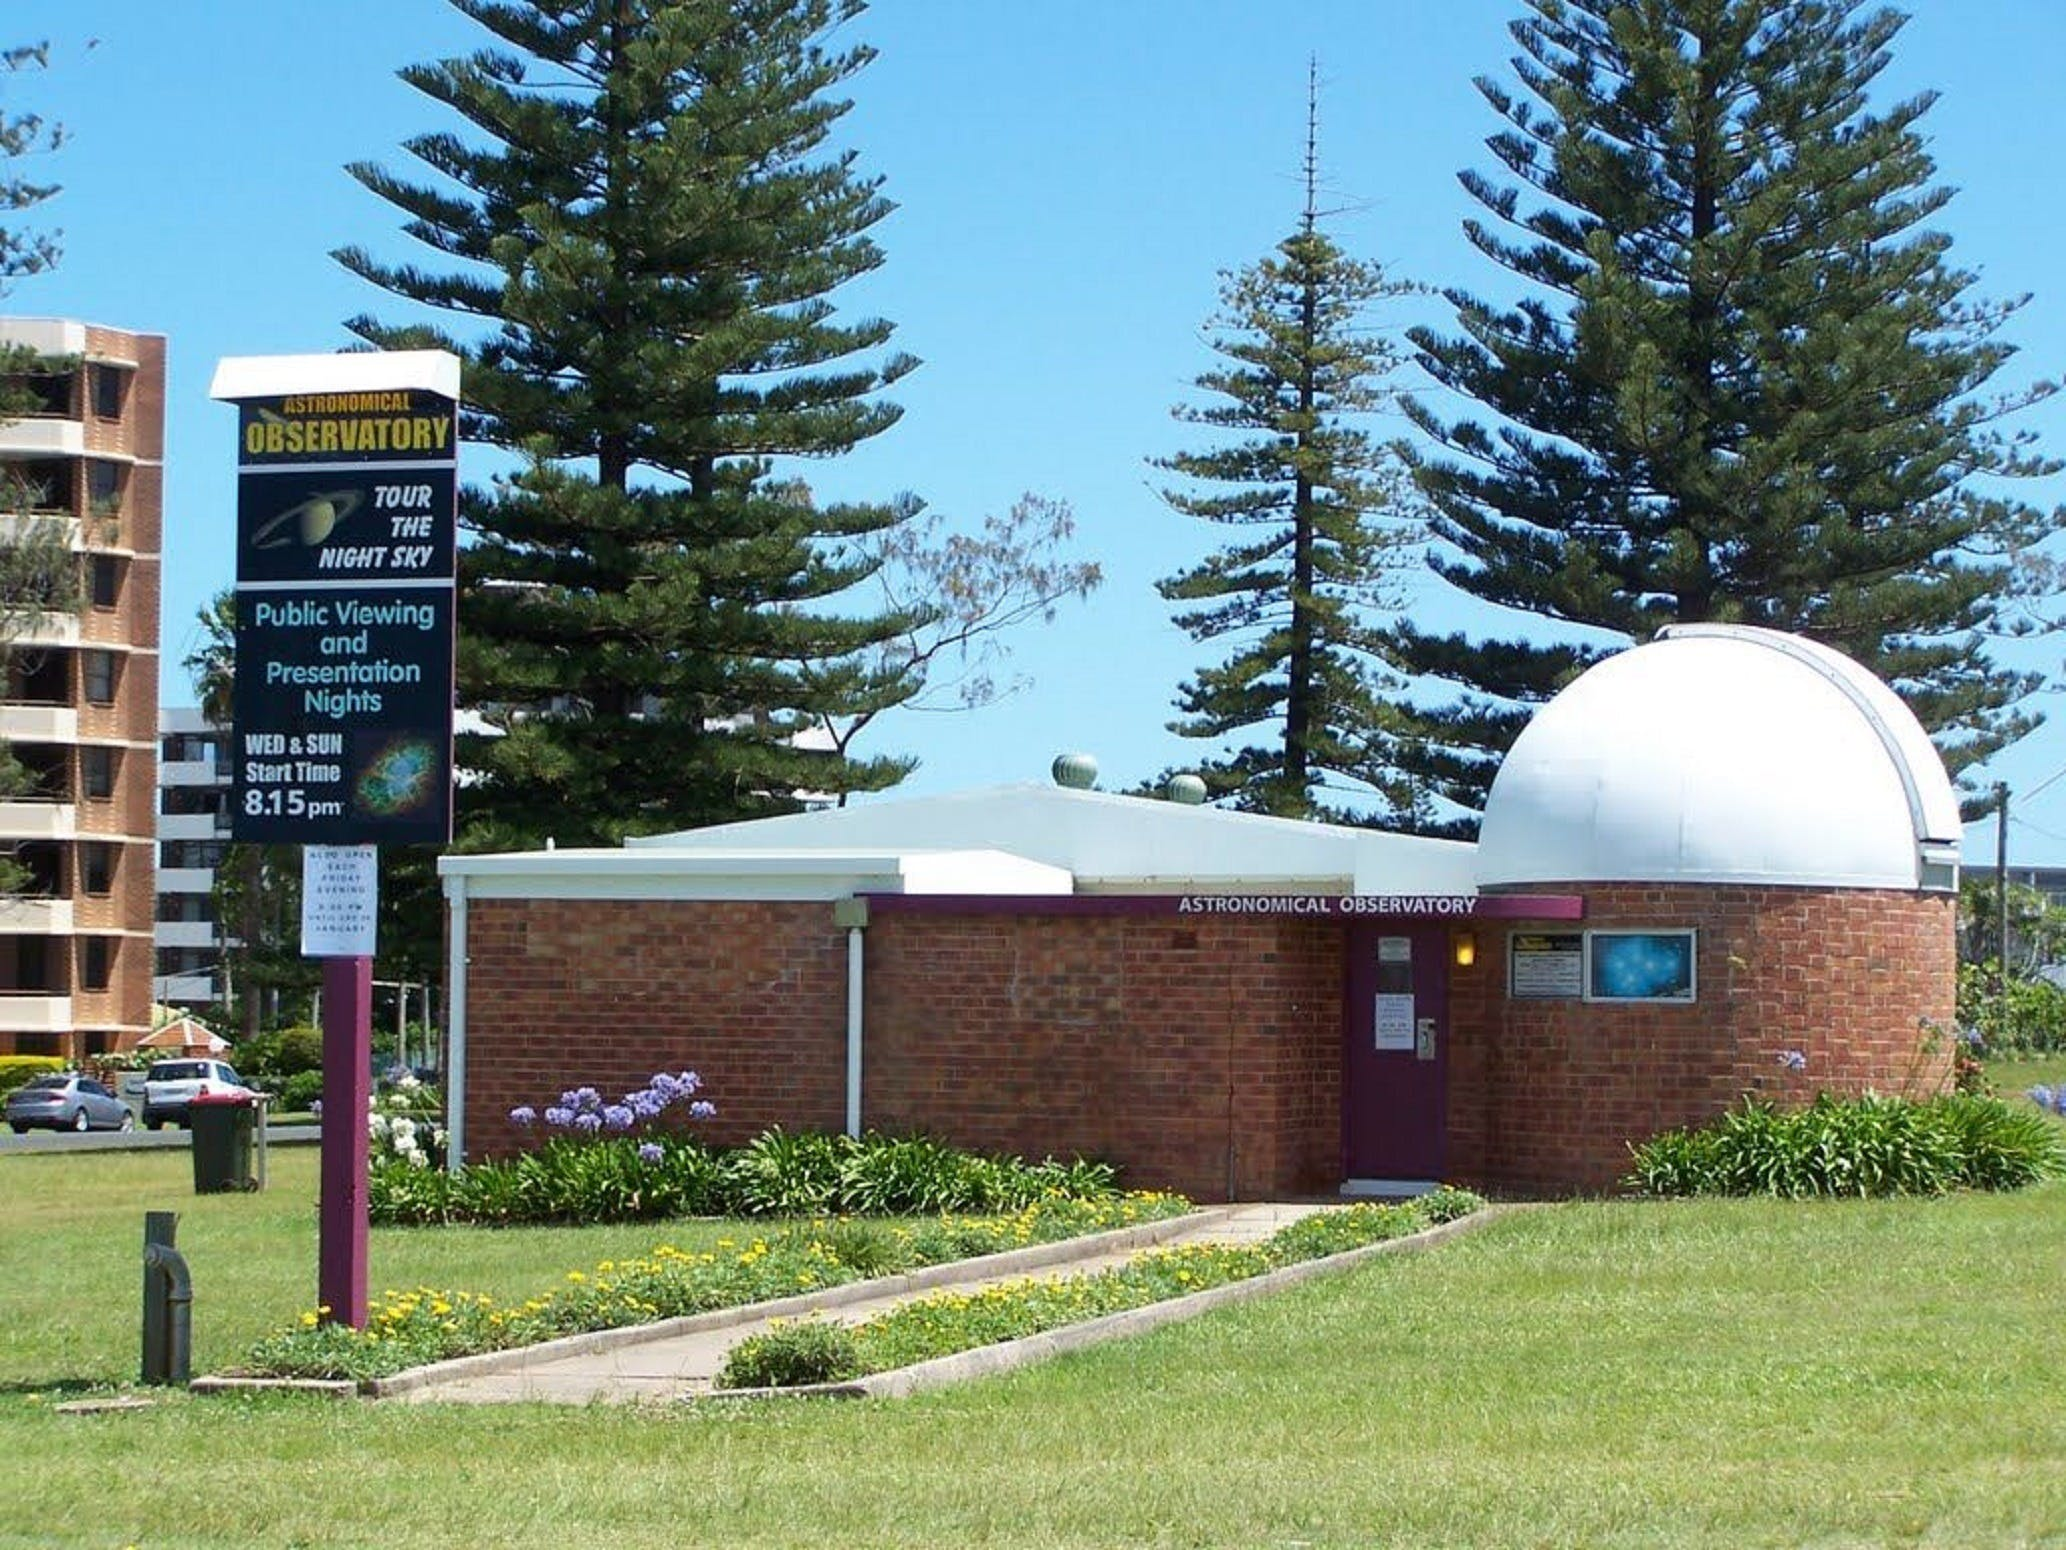 Port Macquarie Astronomical Observatory - Tourism Bookings WA